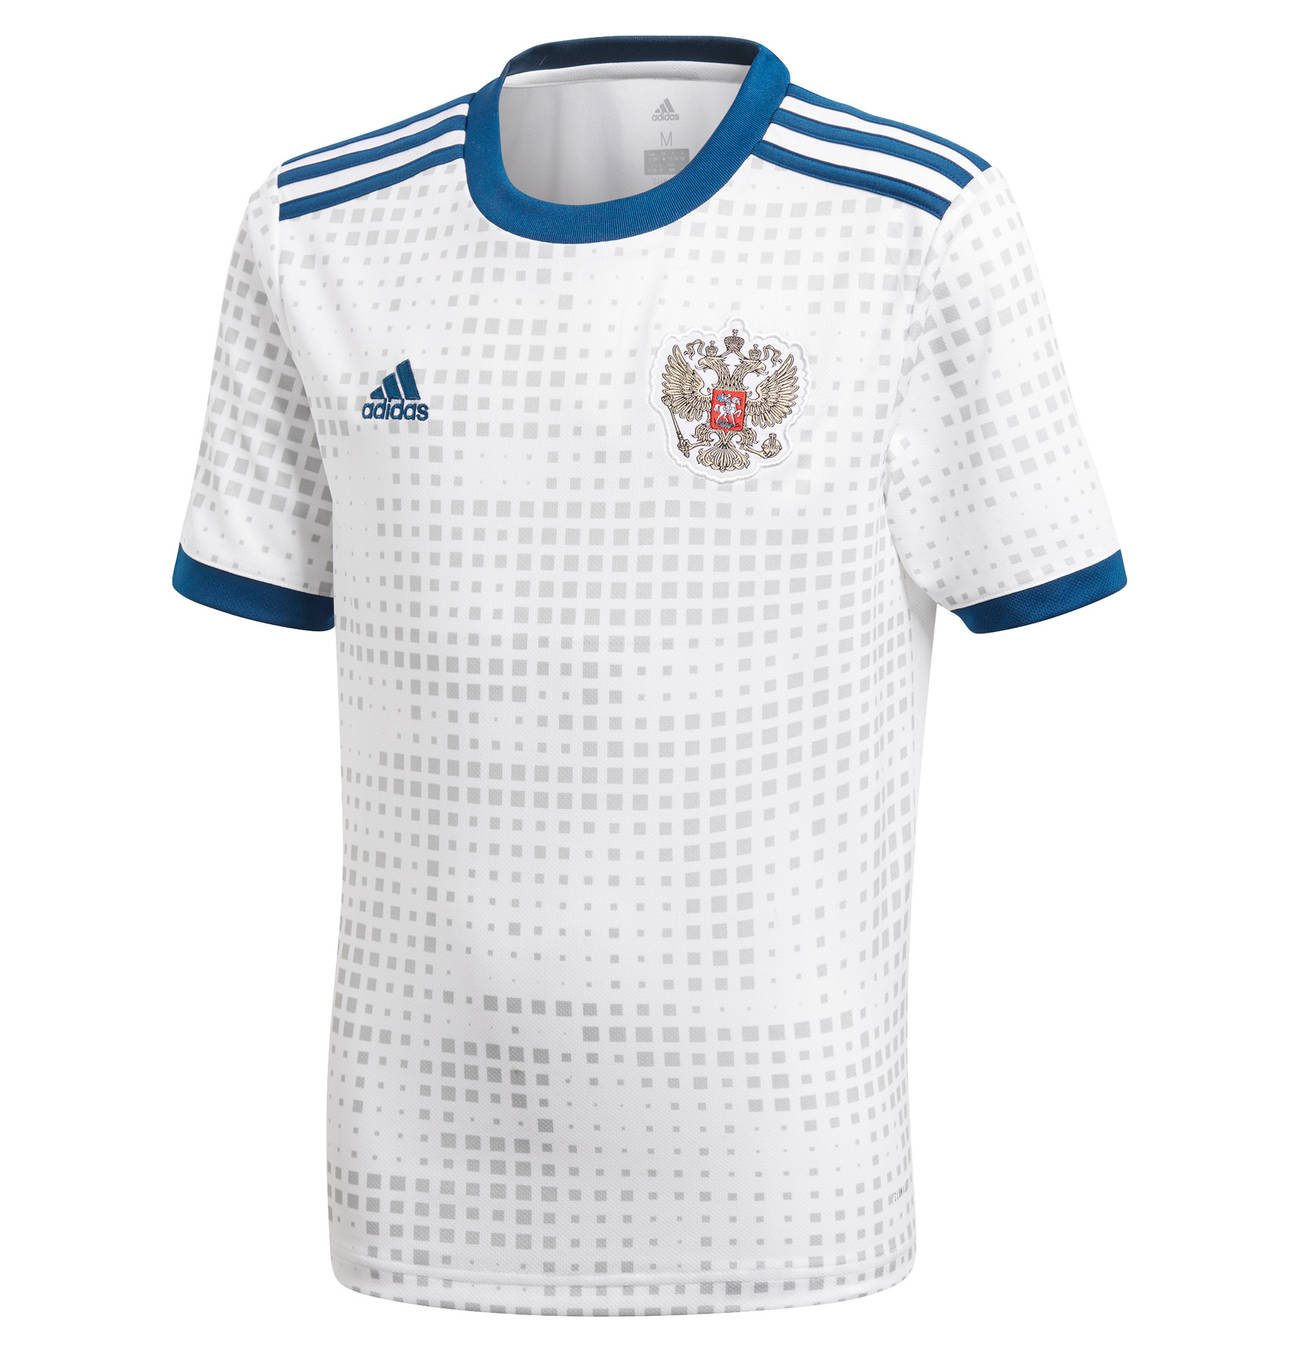 Russland Trikot Away, WM 2018, für Kinder | Products in 2019